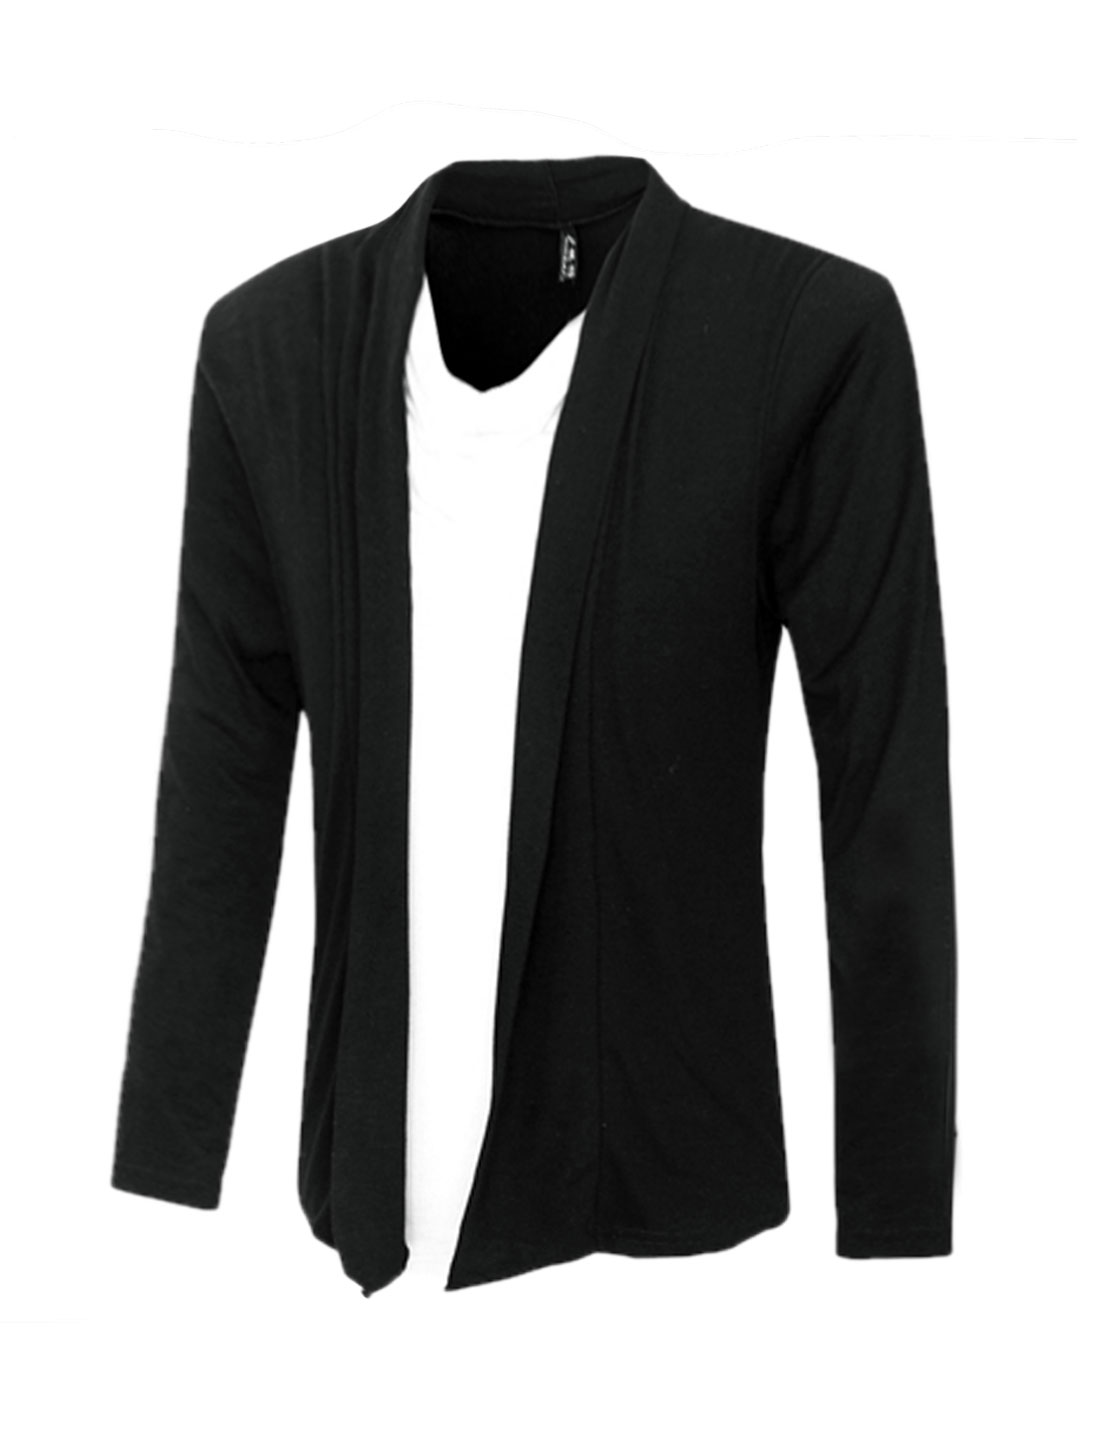 Men Long Sleeves Contrast Color Paneled Layered Top Black M